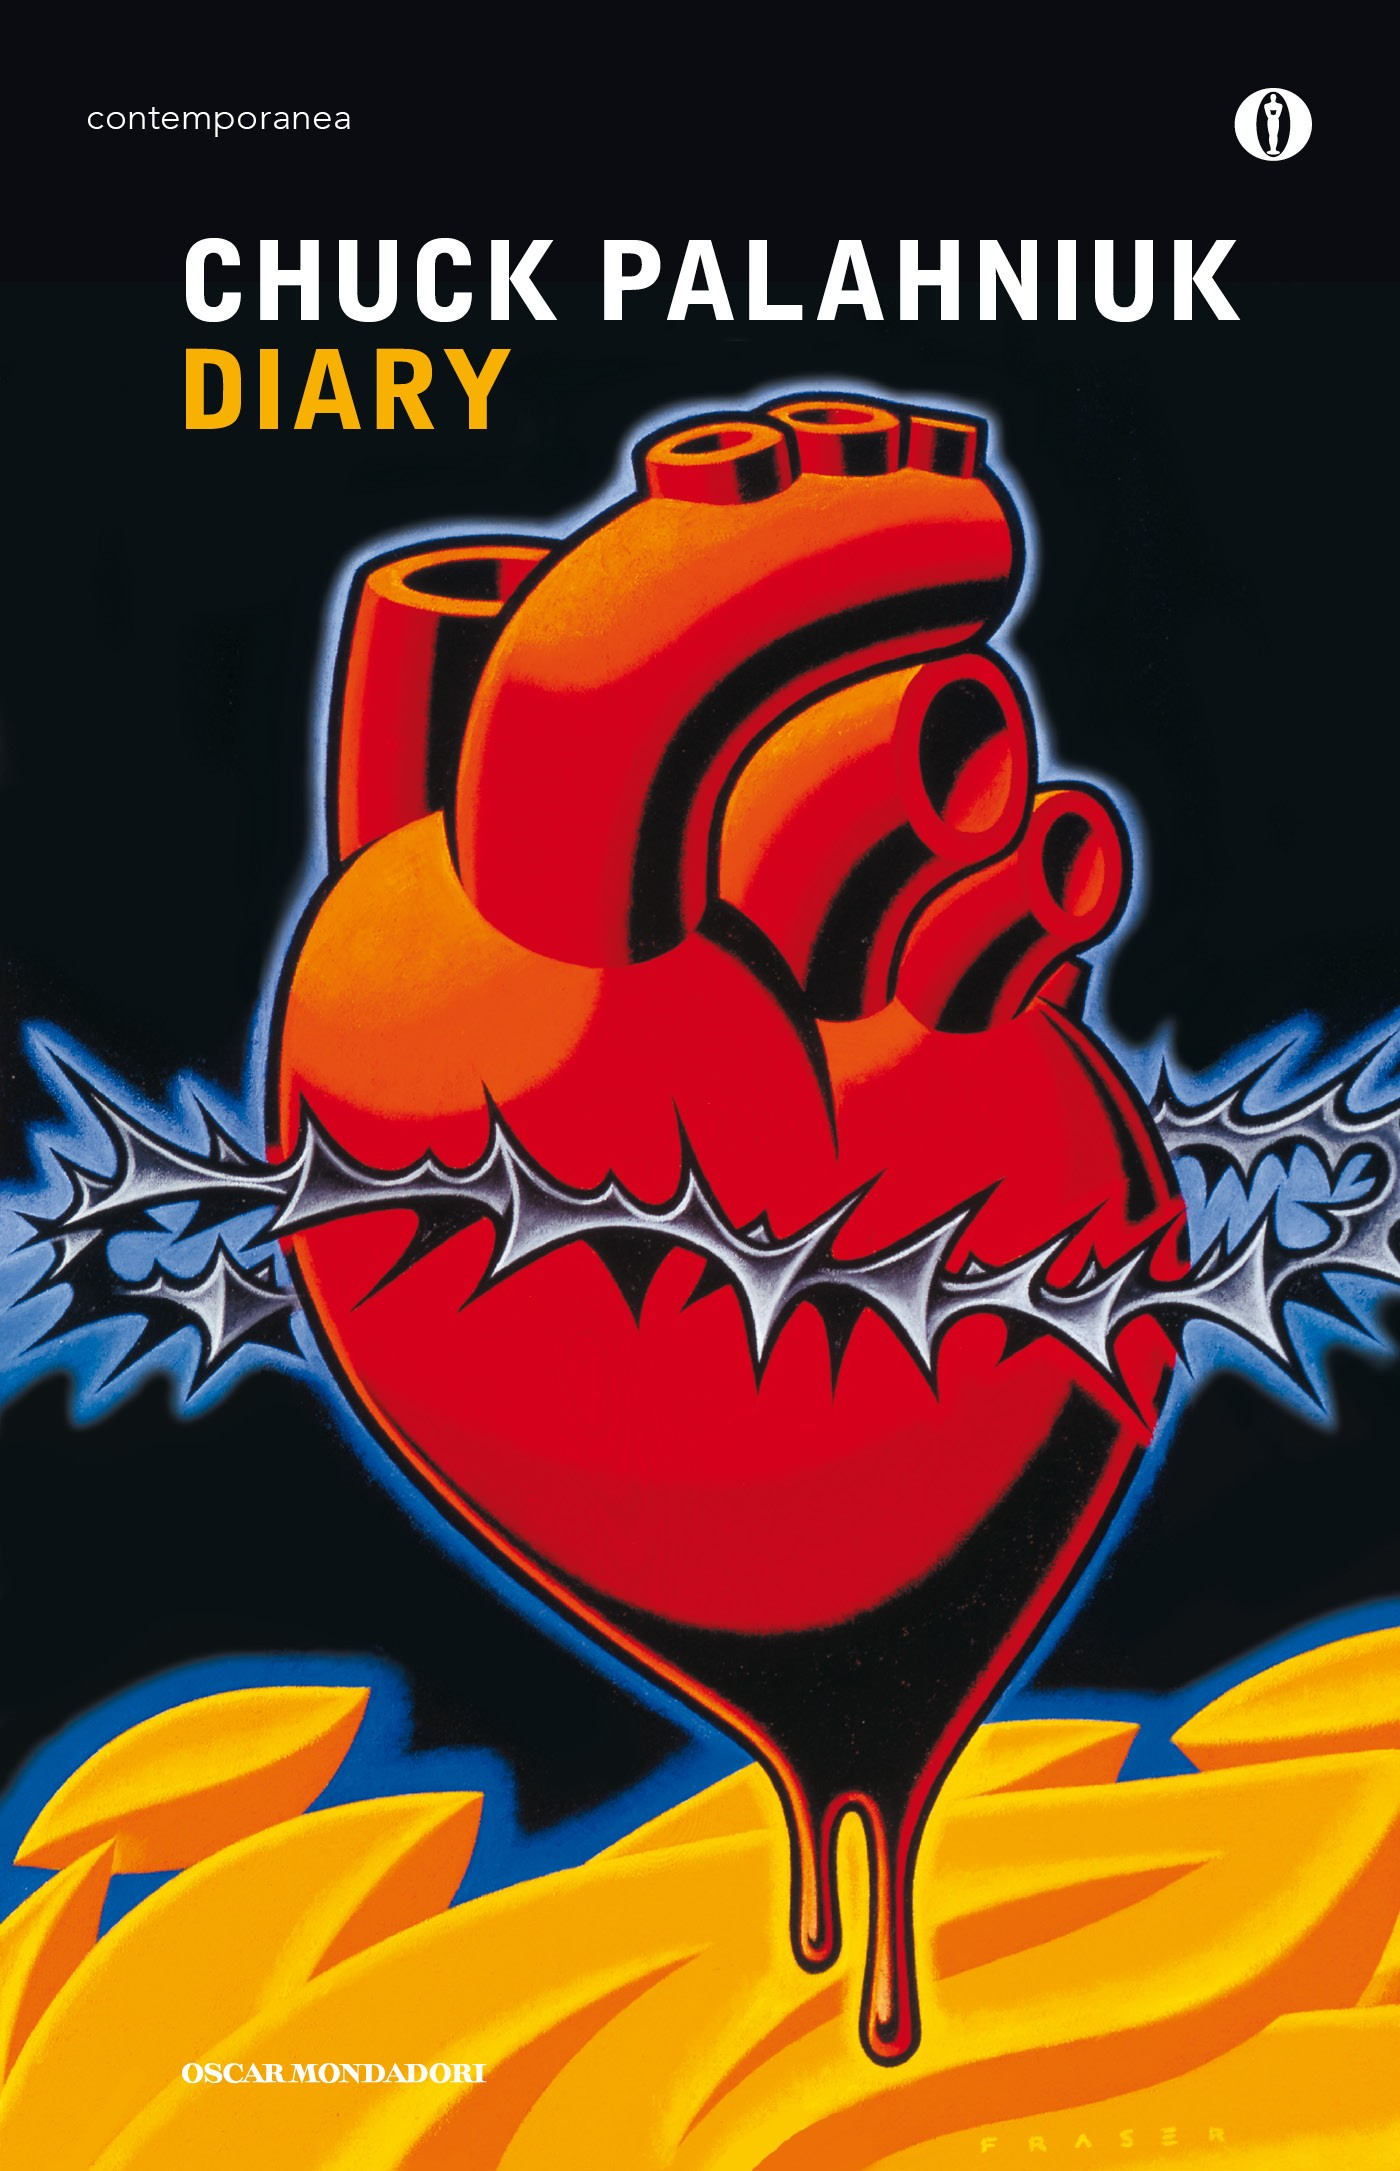 diary by chuck palahniuk from a Laura miller of saloncom wrote a scathing review of diary, saying that palahniuk's books traffic in the half-baked  david mccracken (2016) chuck palahniuk.